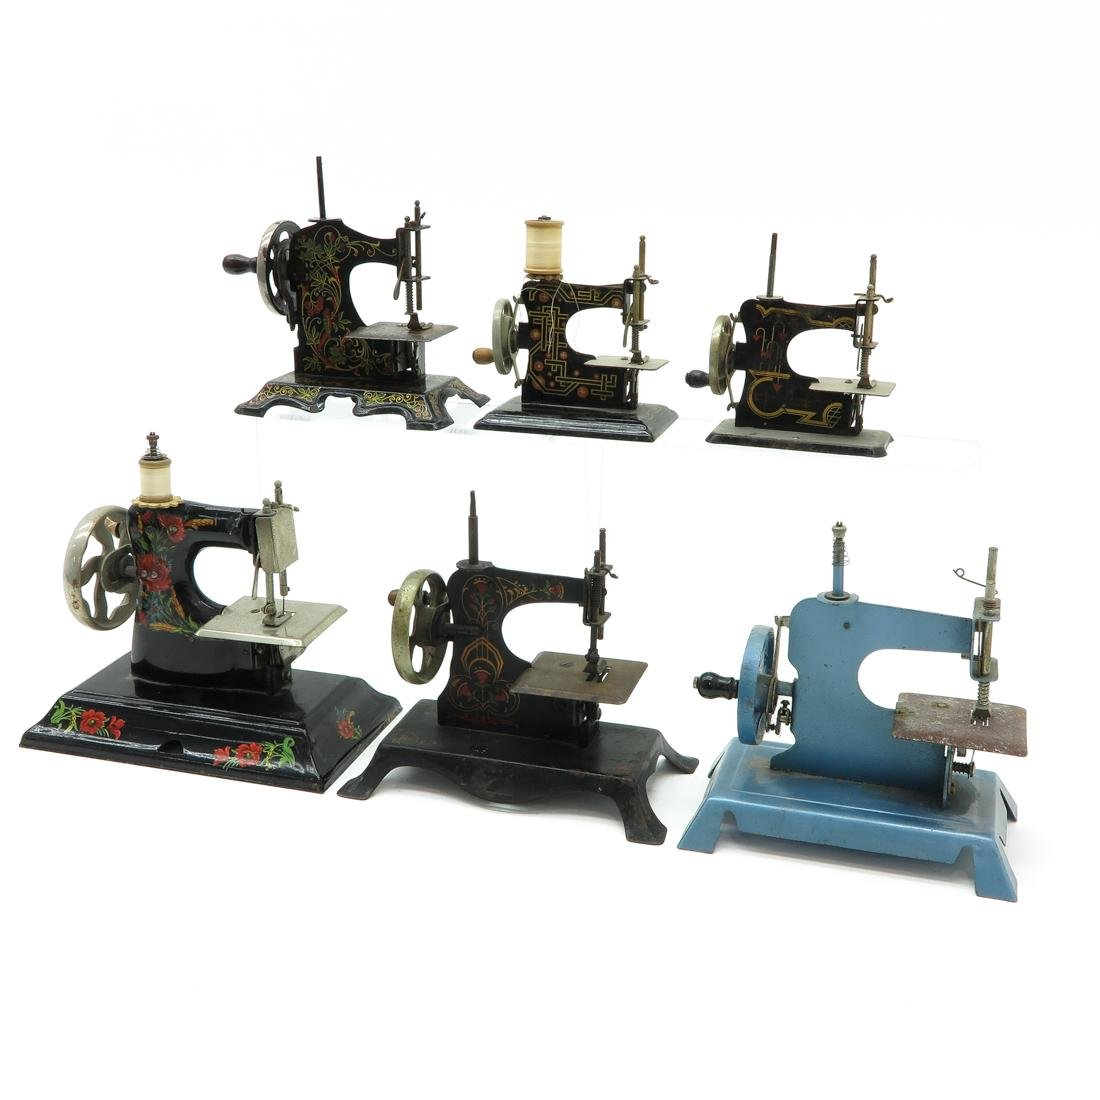 Lot of 6 Vintage Toy Sewing Machines - 3